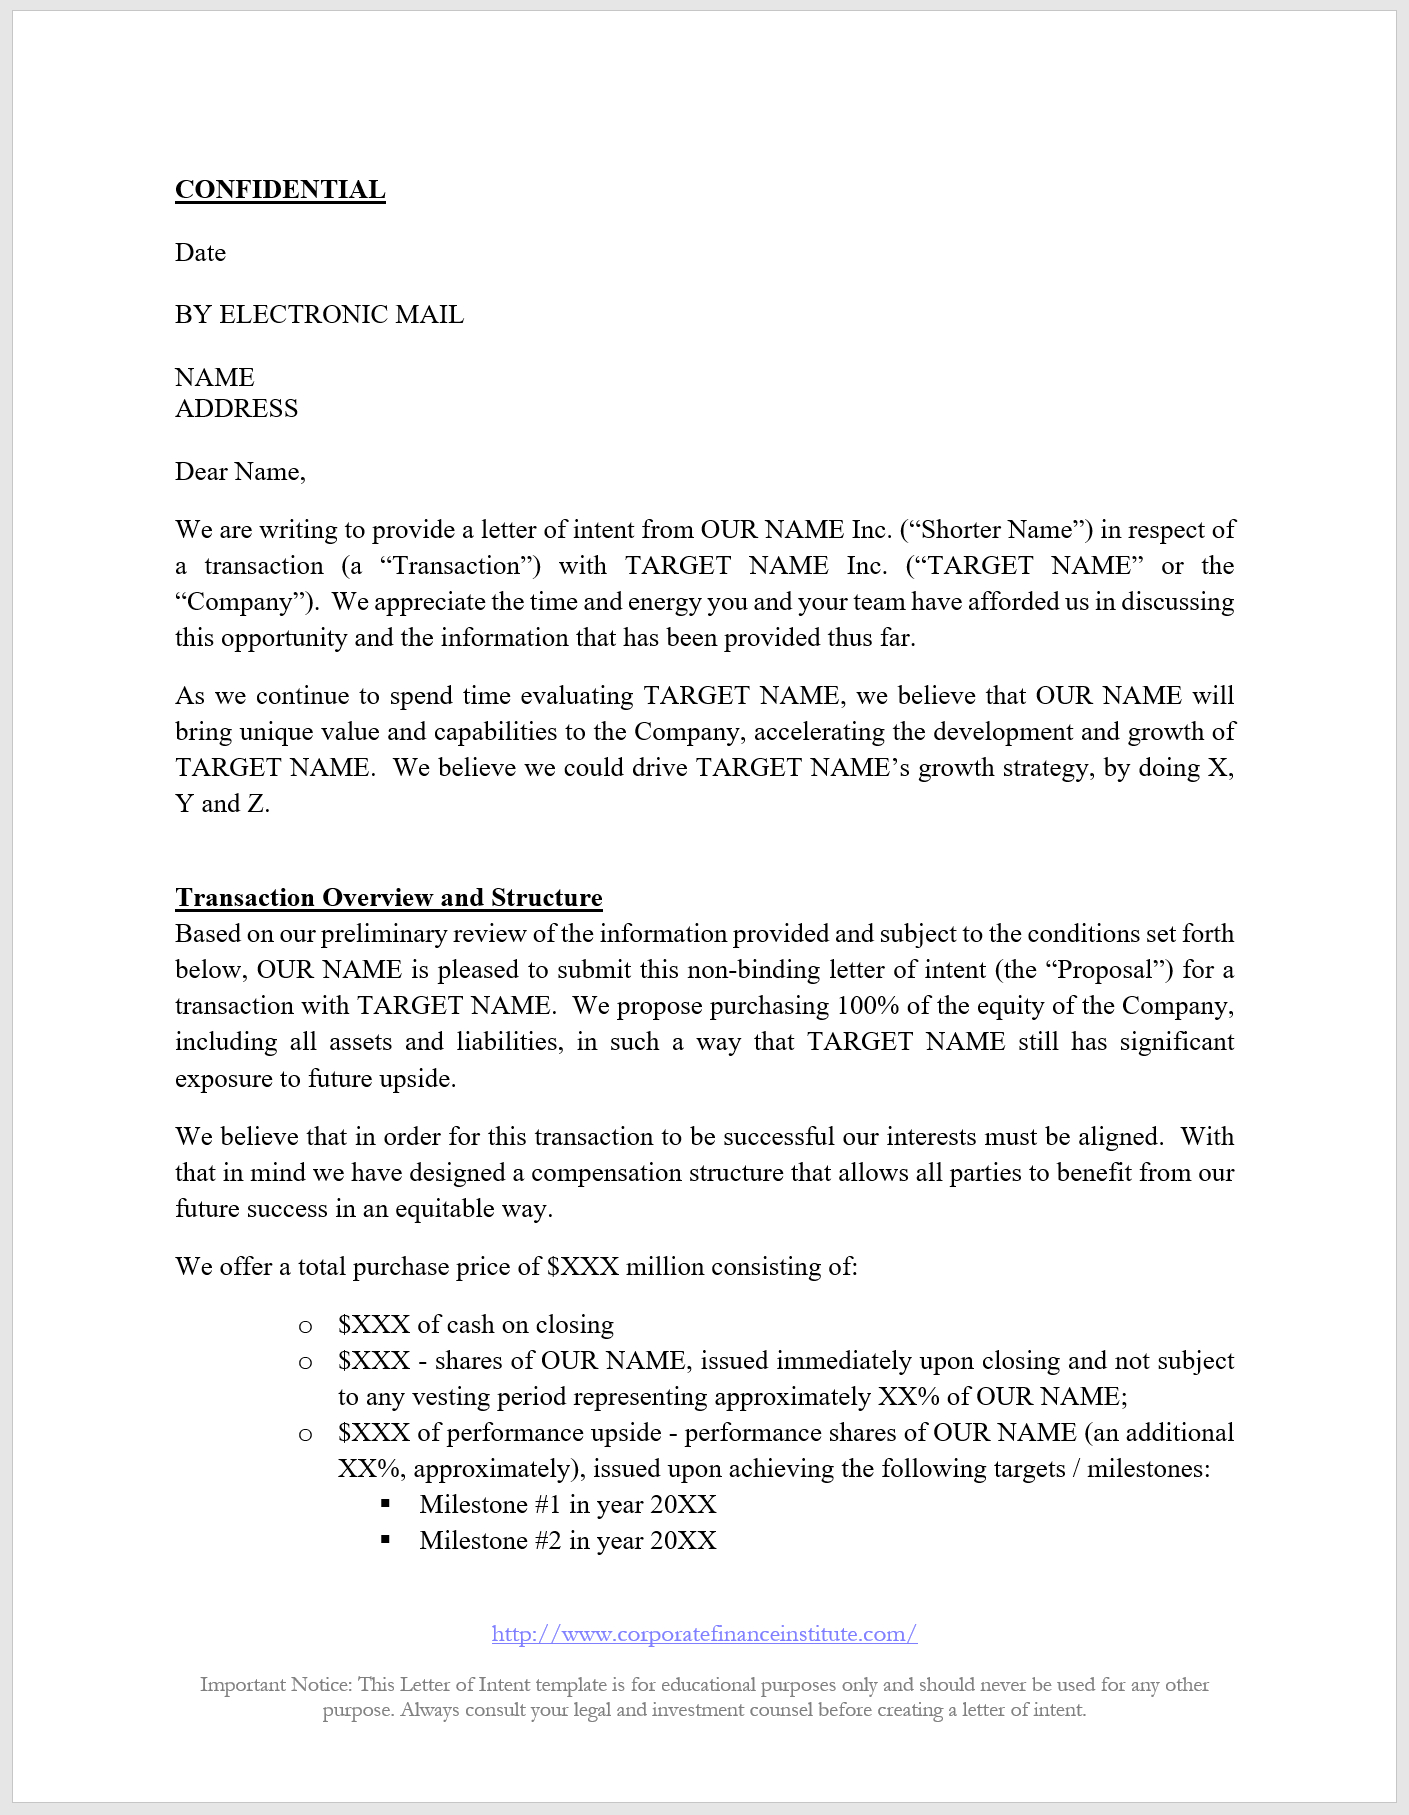 Letter Of Intent Loi Template  All The Key Terms Included In An Loi Pertaining To Share Buy Back Agreement Template